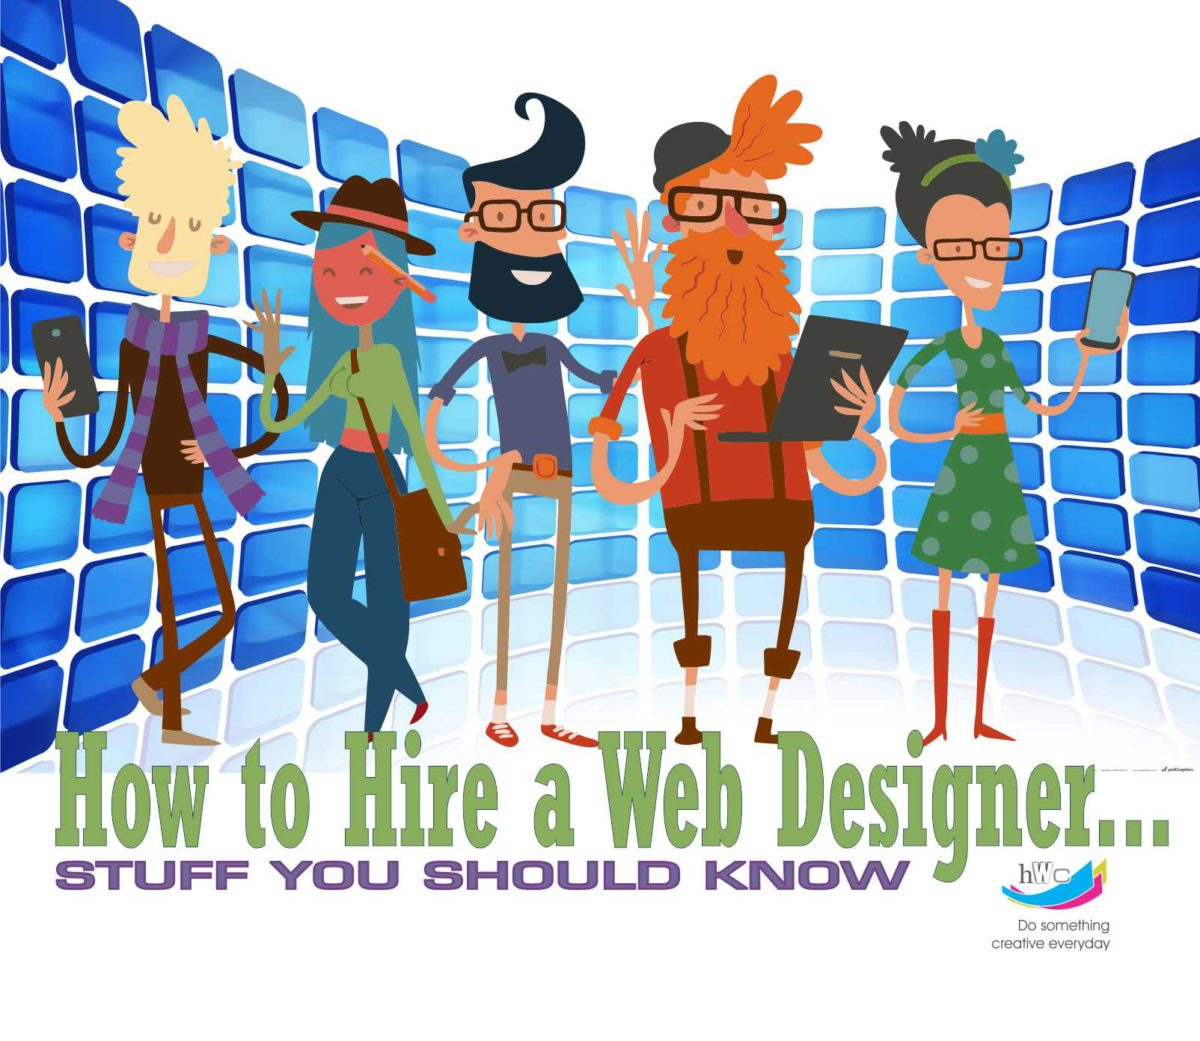 How to hire a web designer - Stuff you should know